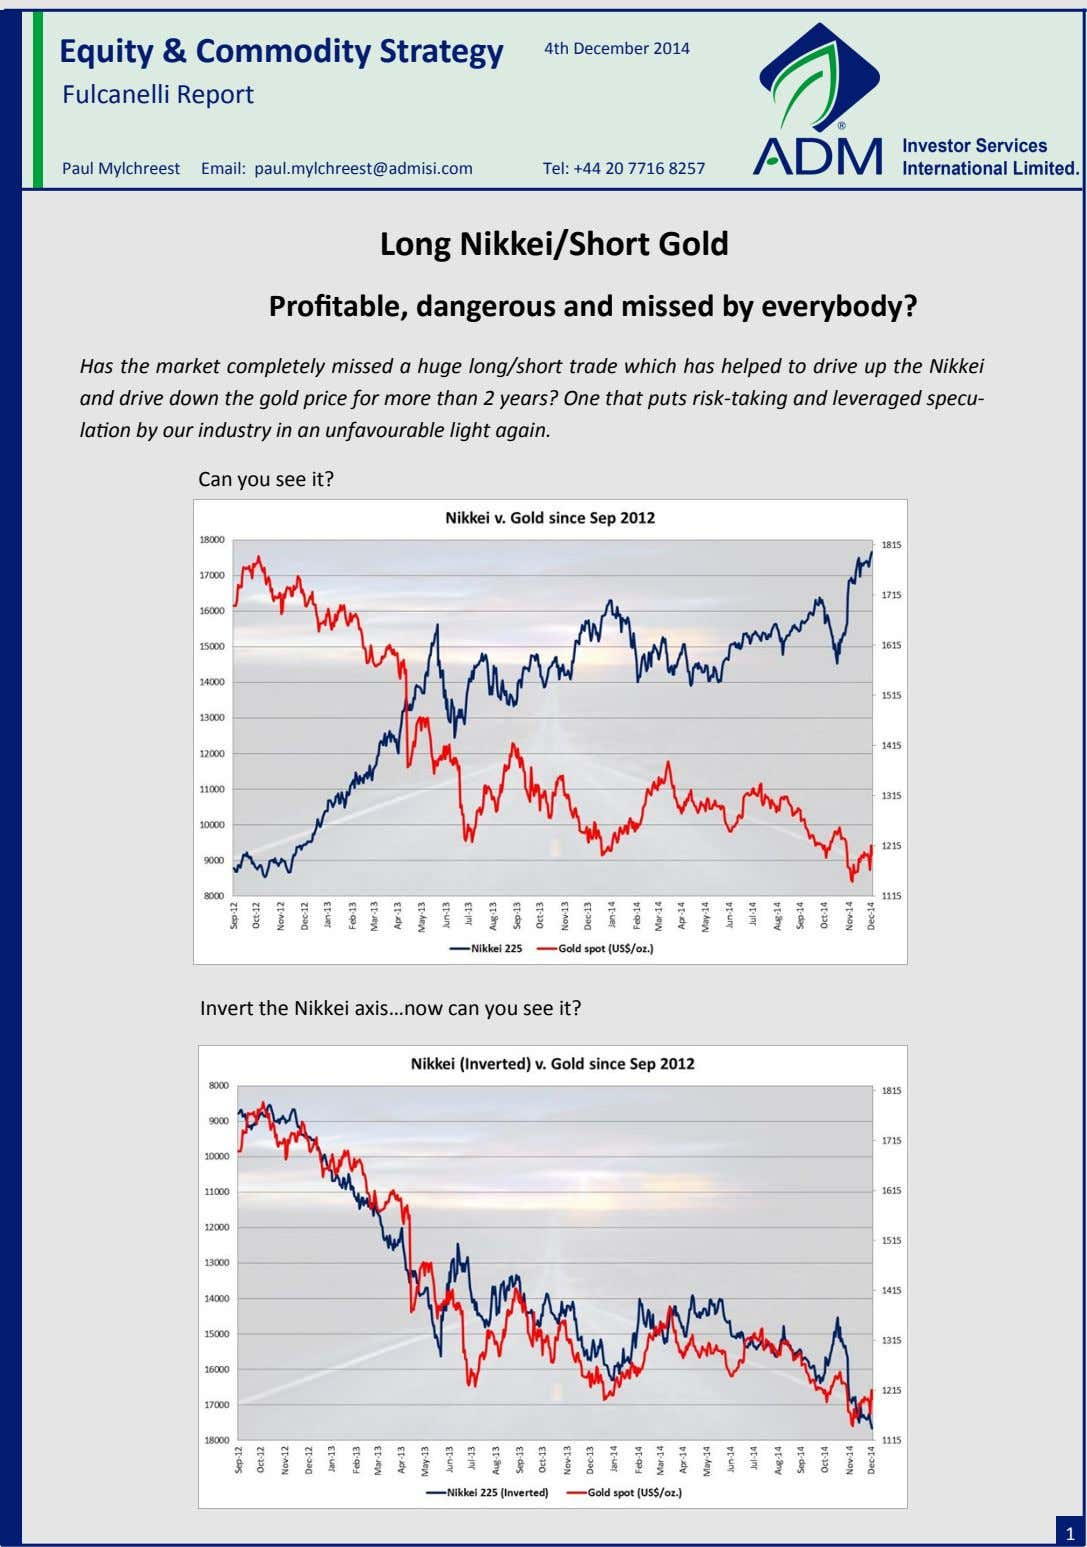 Equity & Commodity Strategy 4th December 2014 Fulcanelli Report Paul Mylchreest Email: paul.mylchreest@admisi.com